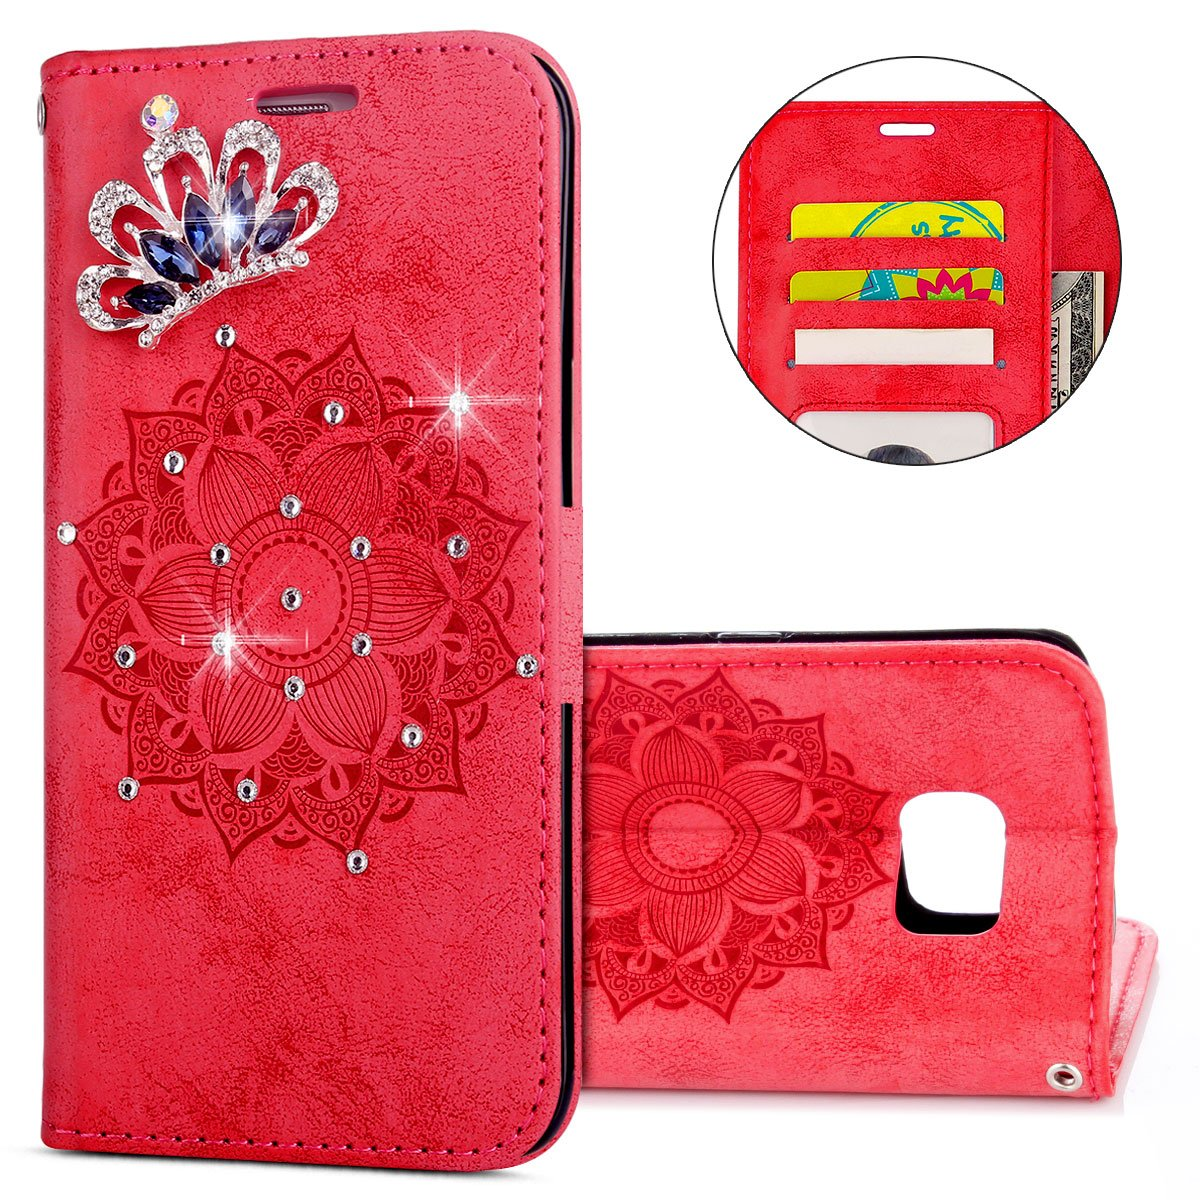 IKASEFU Galaxy S6 edge Case,3D Clear Crown Rhinestone Diamond Bling Glitter Wallet with Card Holder Emboss Mandala Floral Pu Leather Magnetic Flip Protective Cover for Samsung Galaxy S6 edge,Red